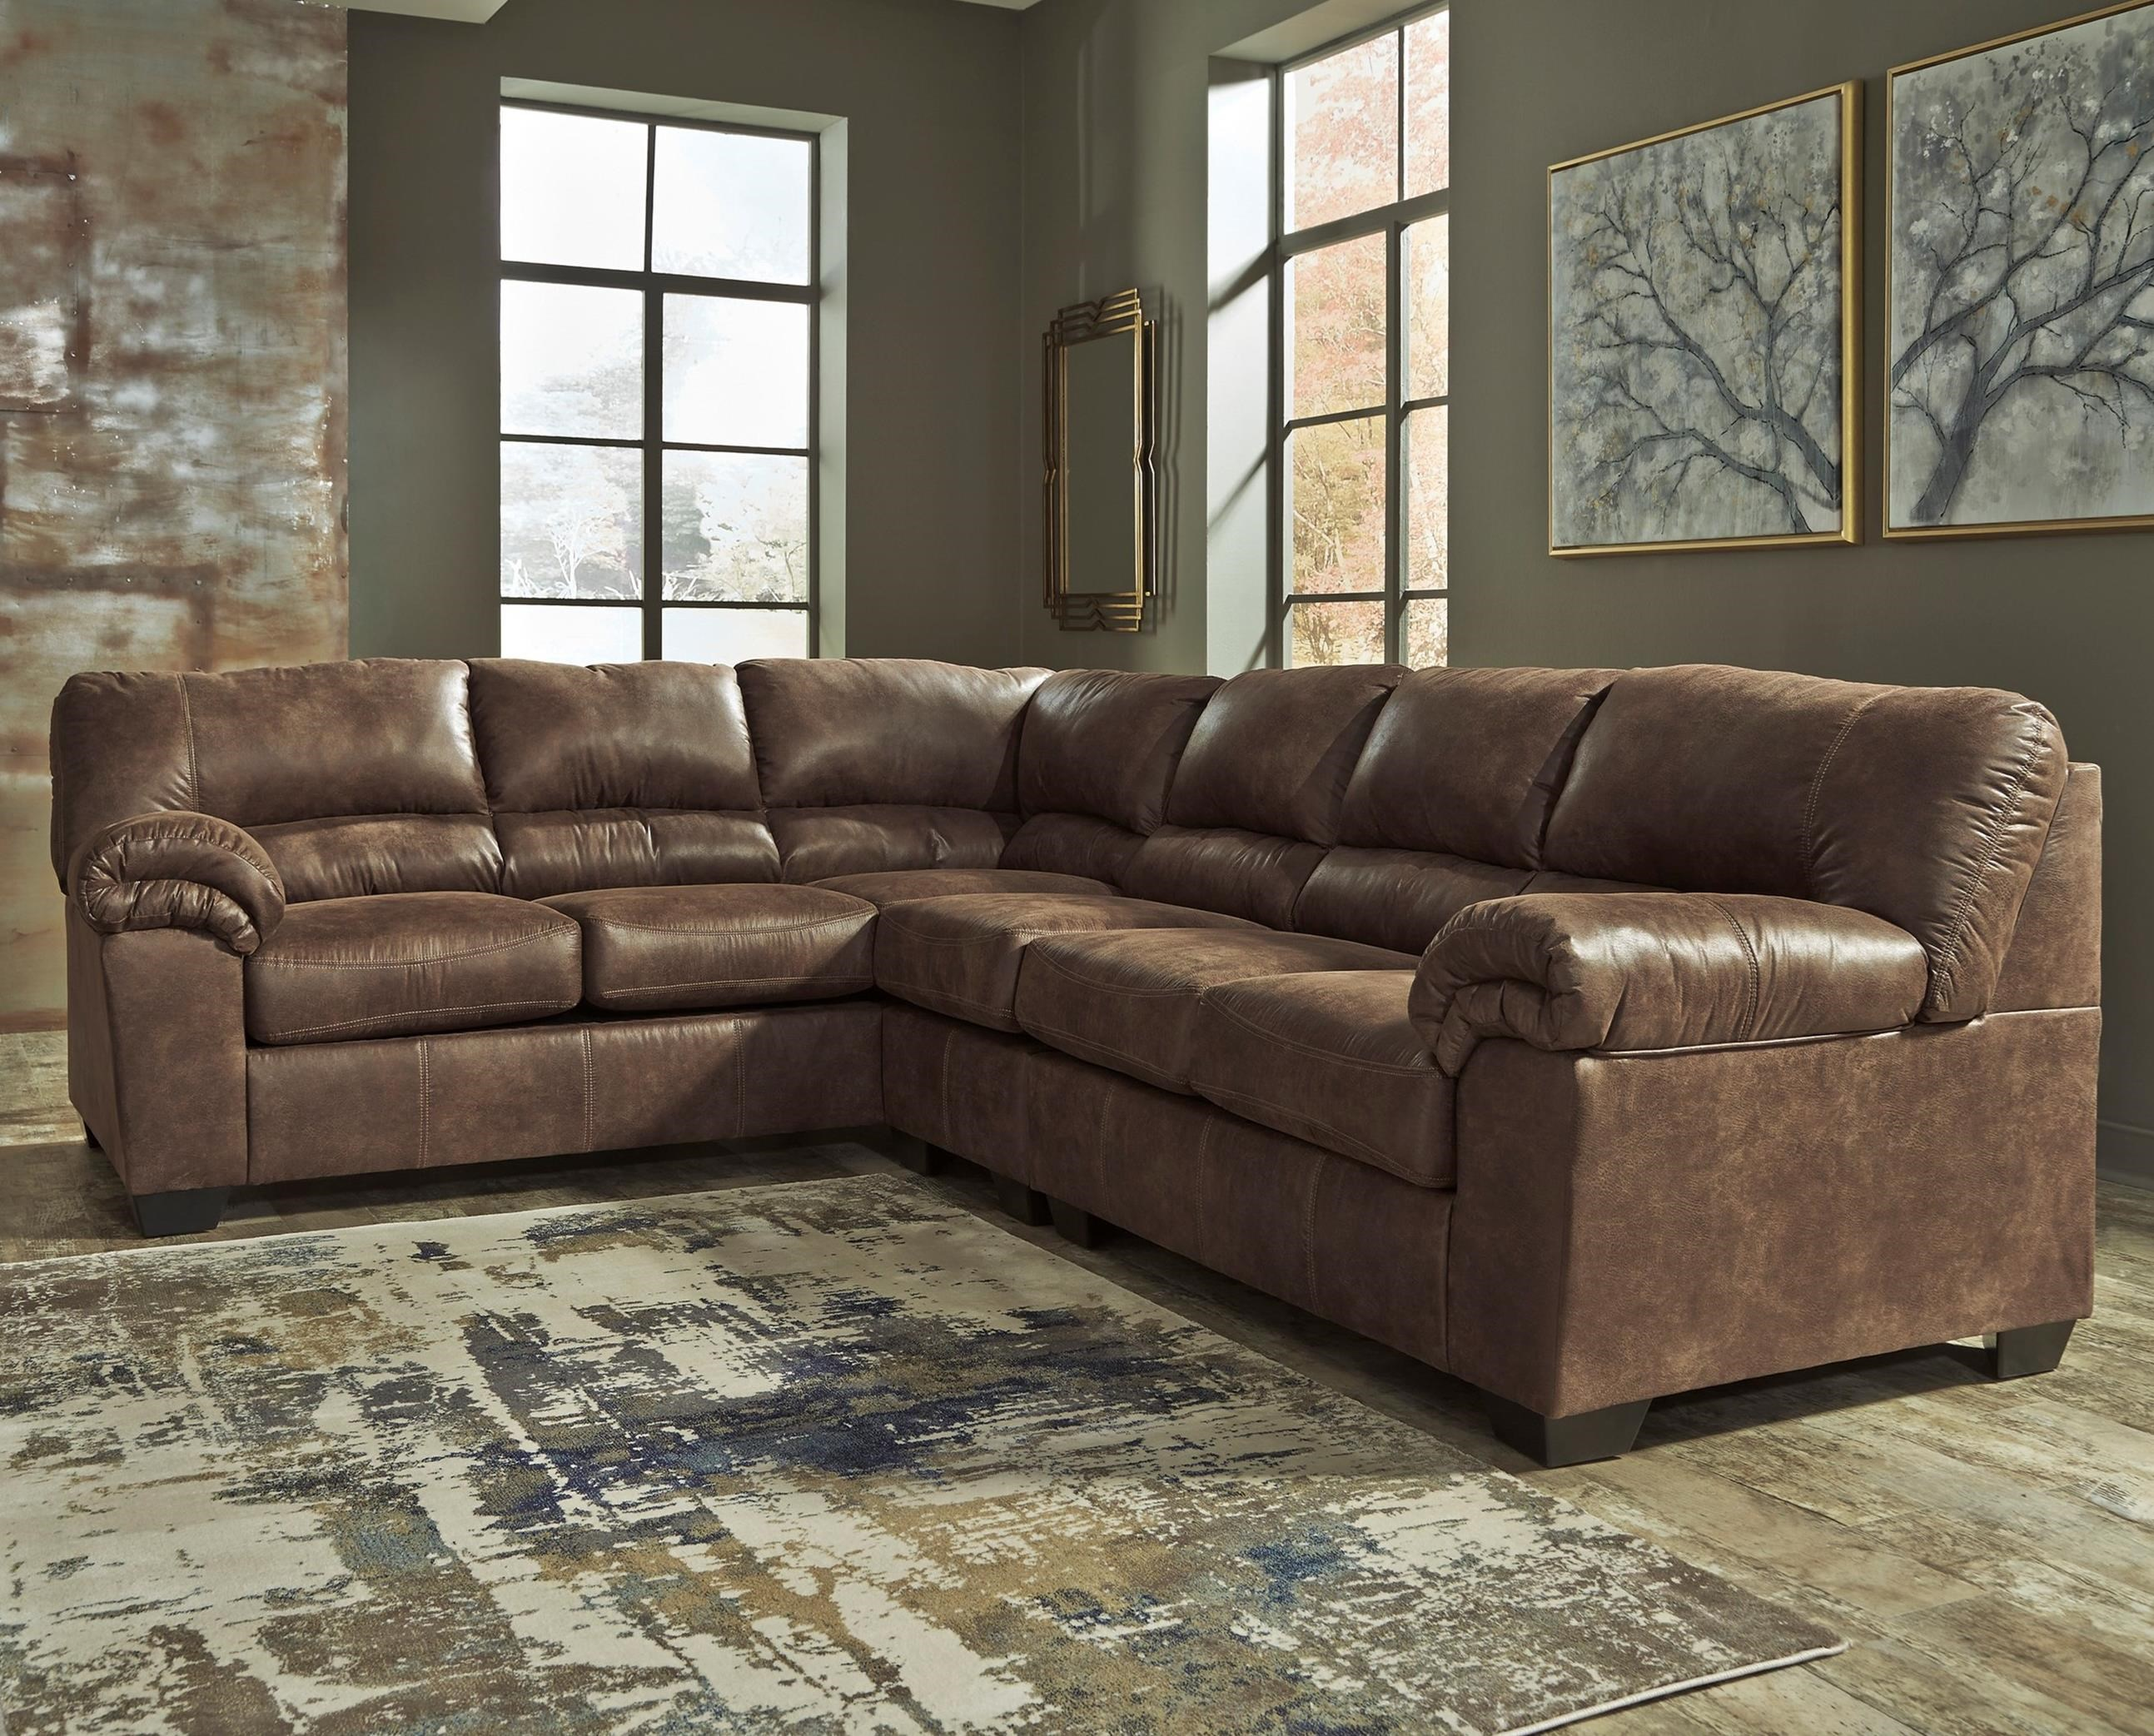 Bladen 3-Piece Sectional by Signature Design by Ashley at Household Furniture